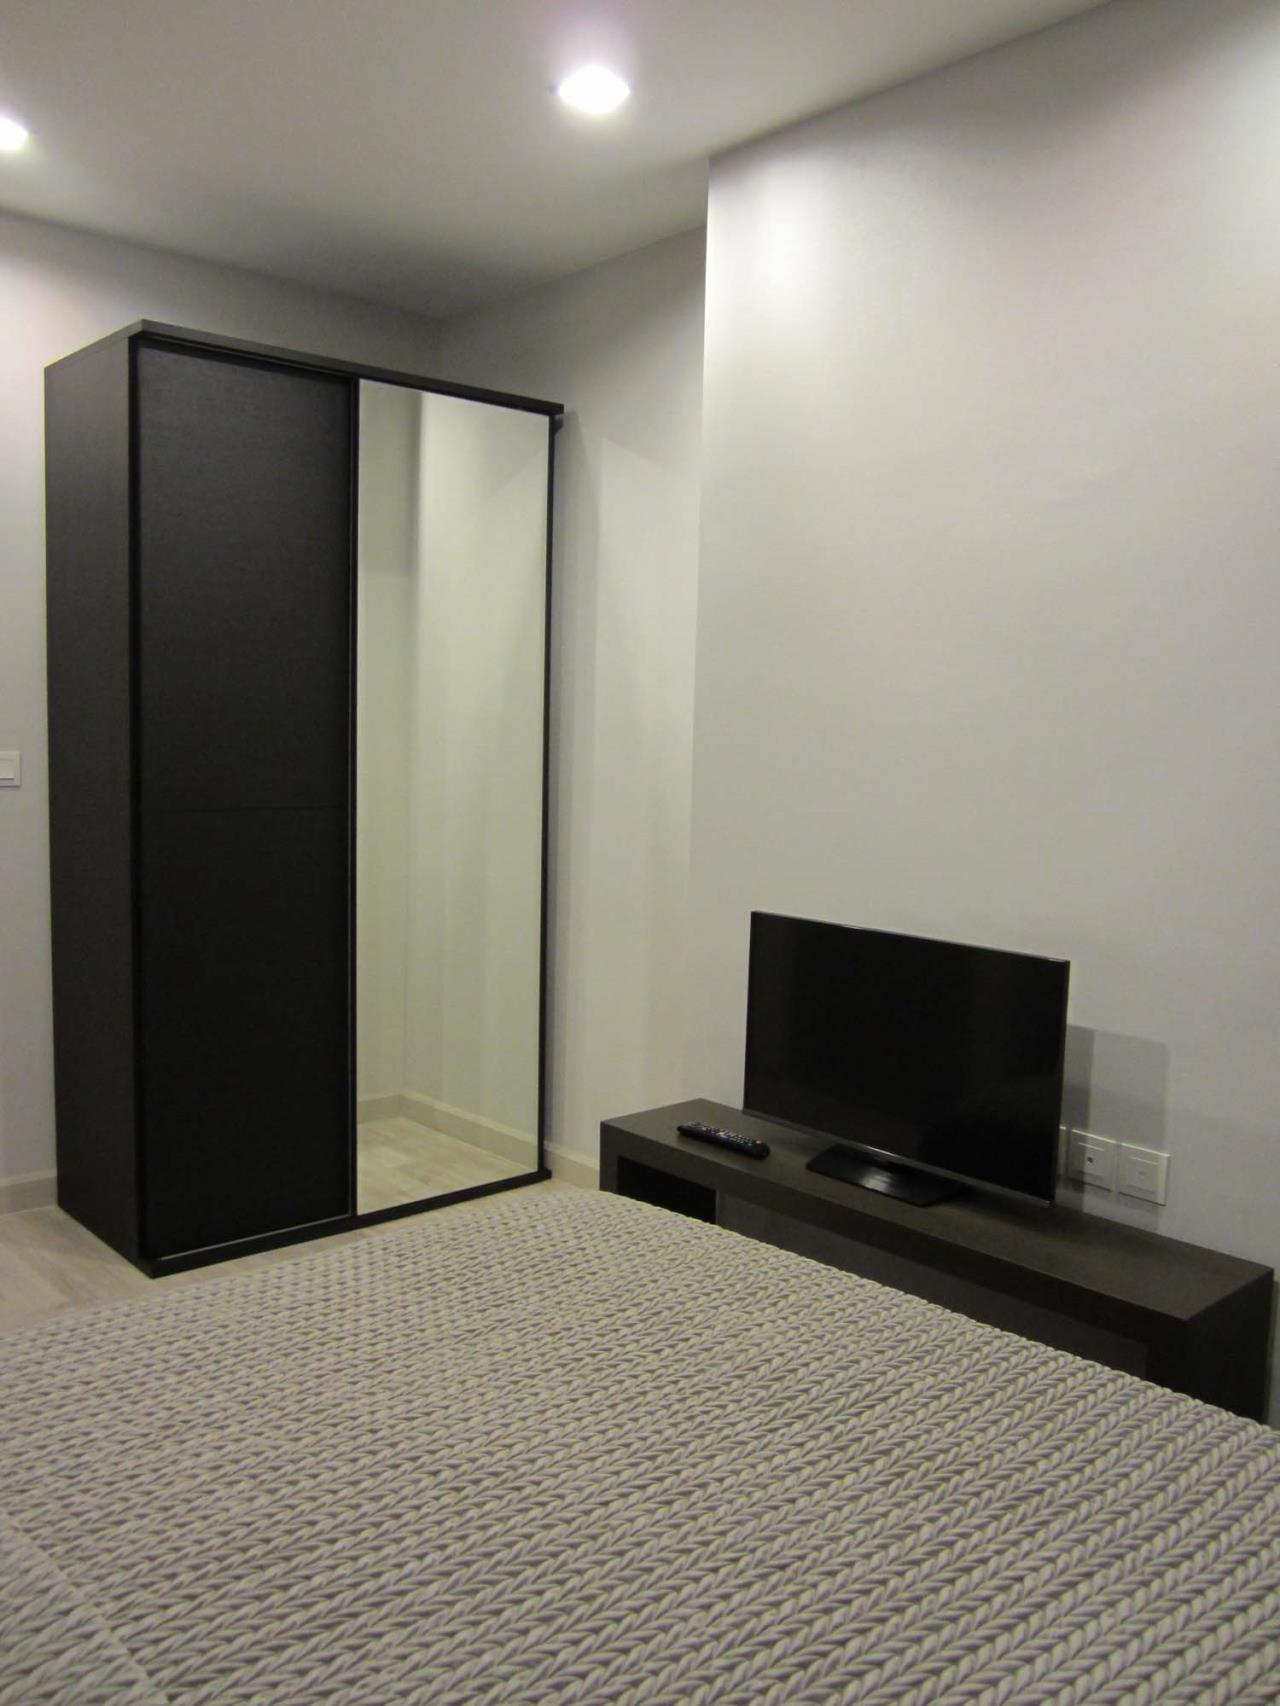 Piri Property Agency's 2 bedrooms  For Rent Ideo Mobi Onnut 8